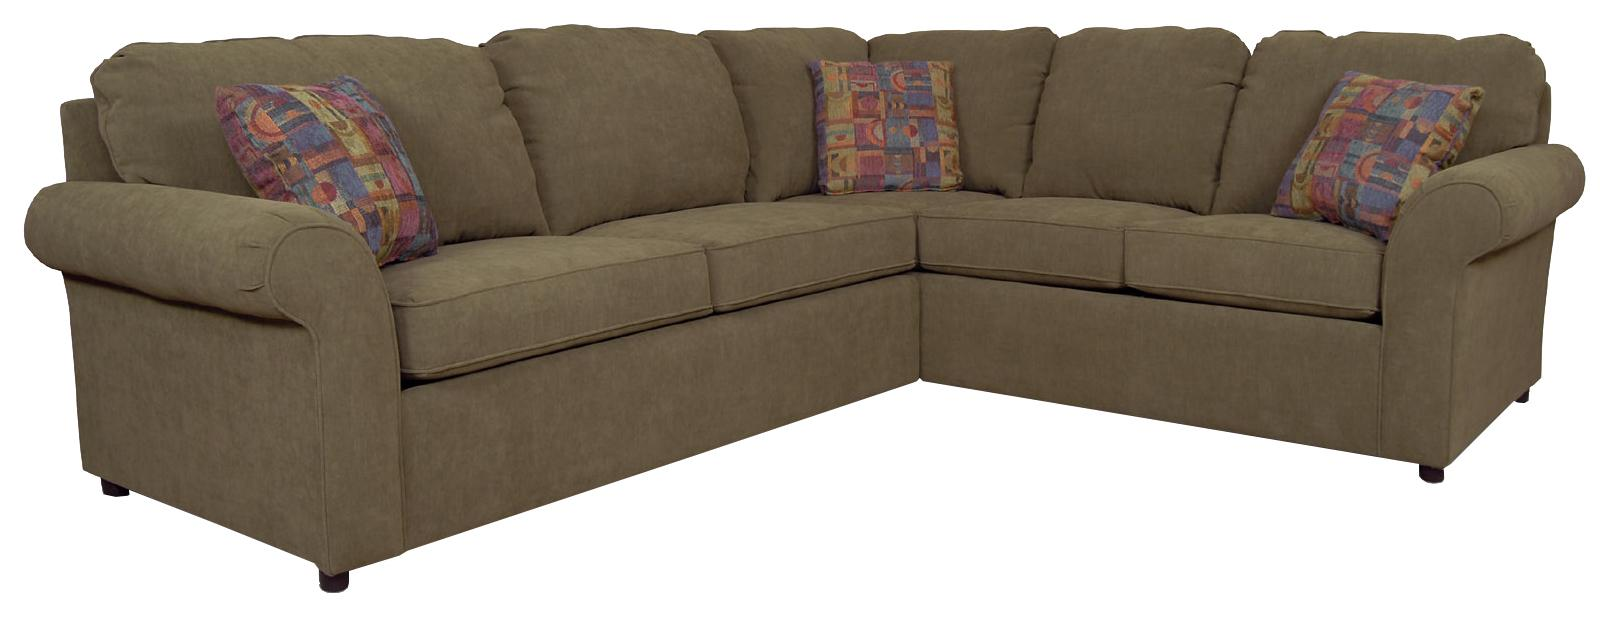 England Malibu 4-5 Seat Corner Sectional with Sleeper ...